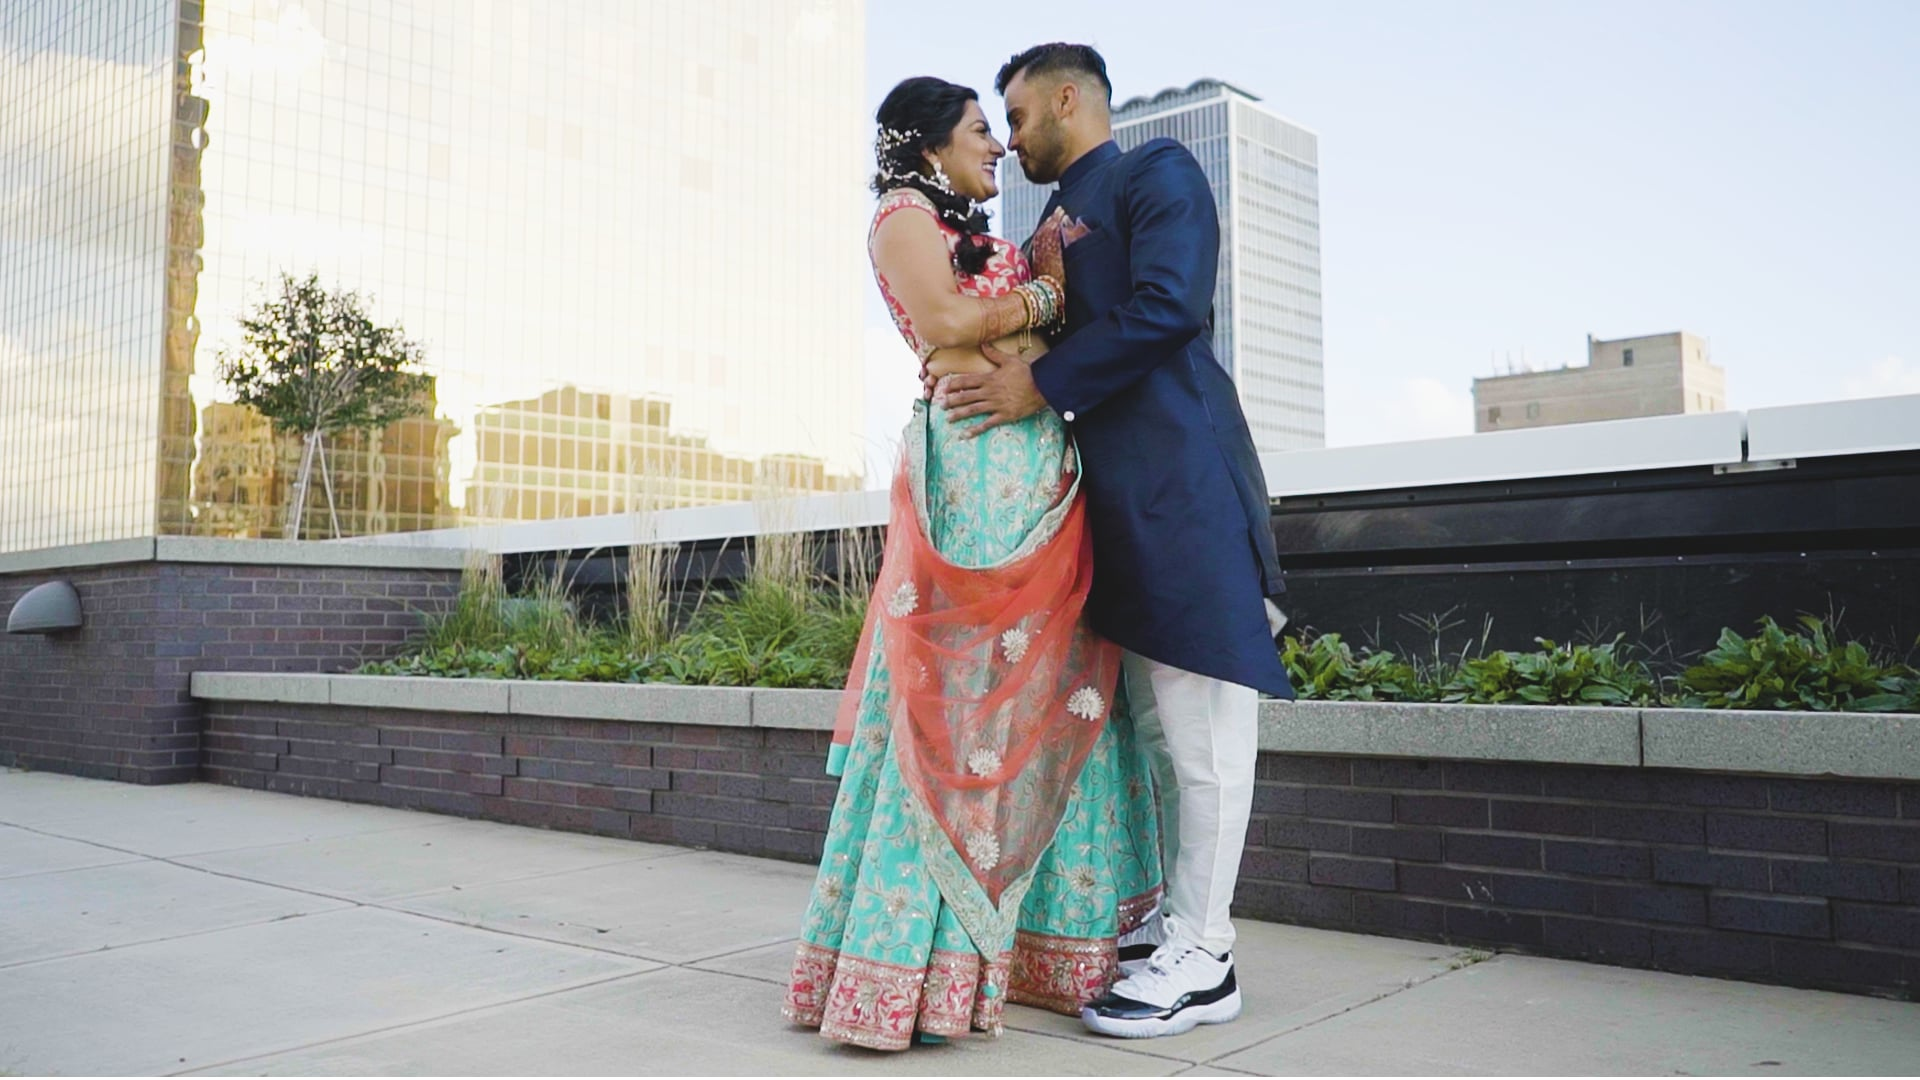 Sheraton Indianapolis City Centre Hotel IN Hindu Wedding | Raina & Pawan | Feature Film